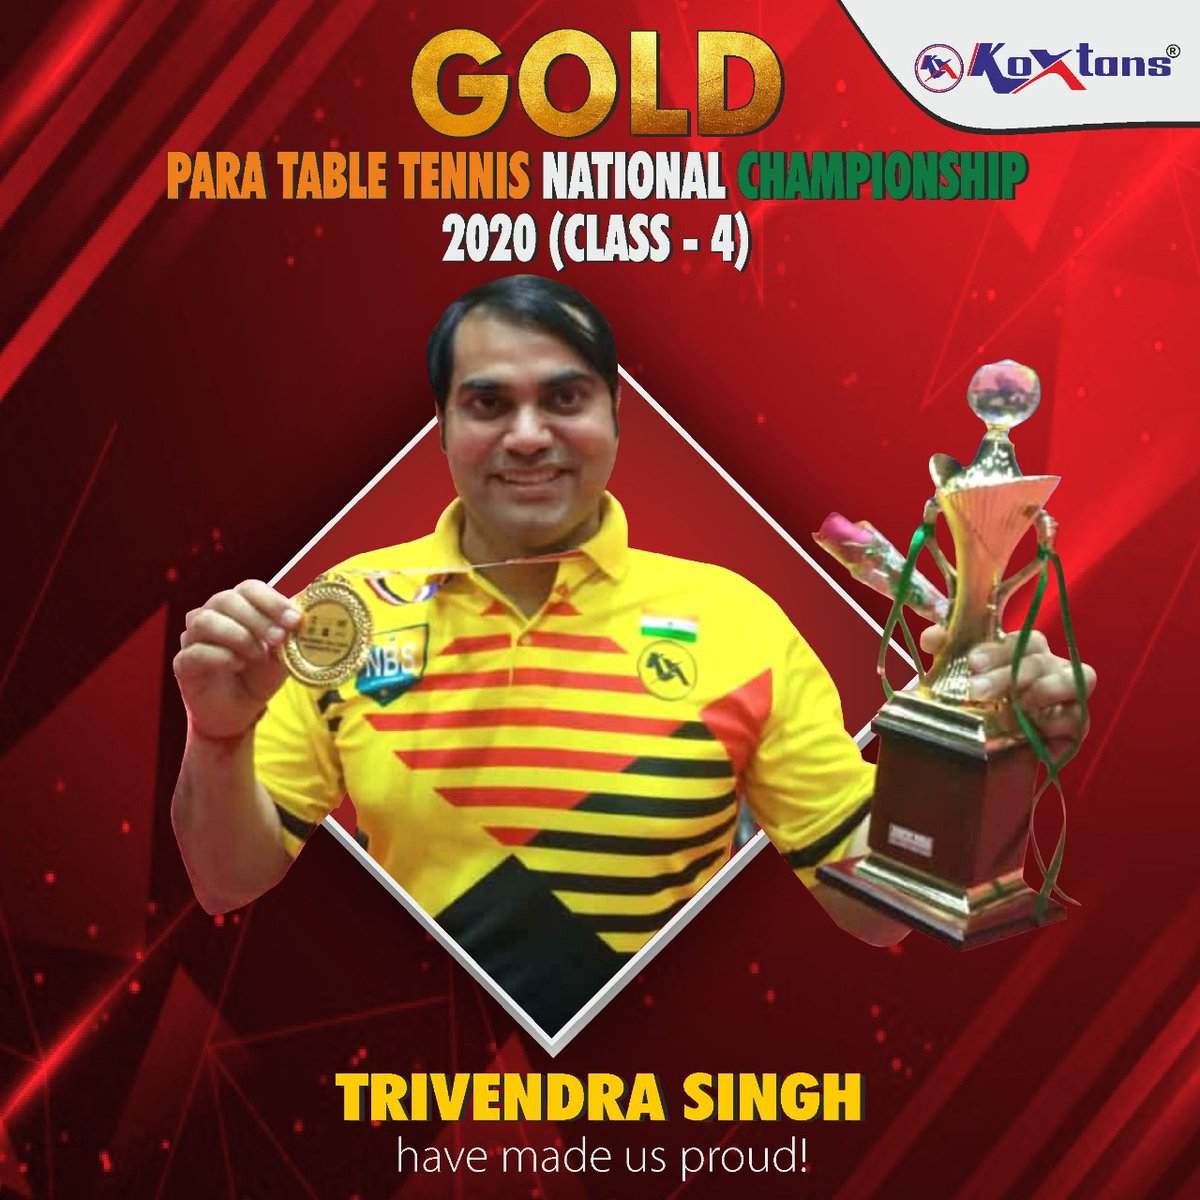 Congratulations 🏆🥇 to TRIVENDRA SINGH on acquiring the Gold in Para Table Tennis National Championship 2020 (Class-4). https://t.co/QSkl5B09T2